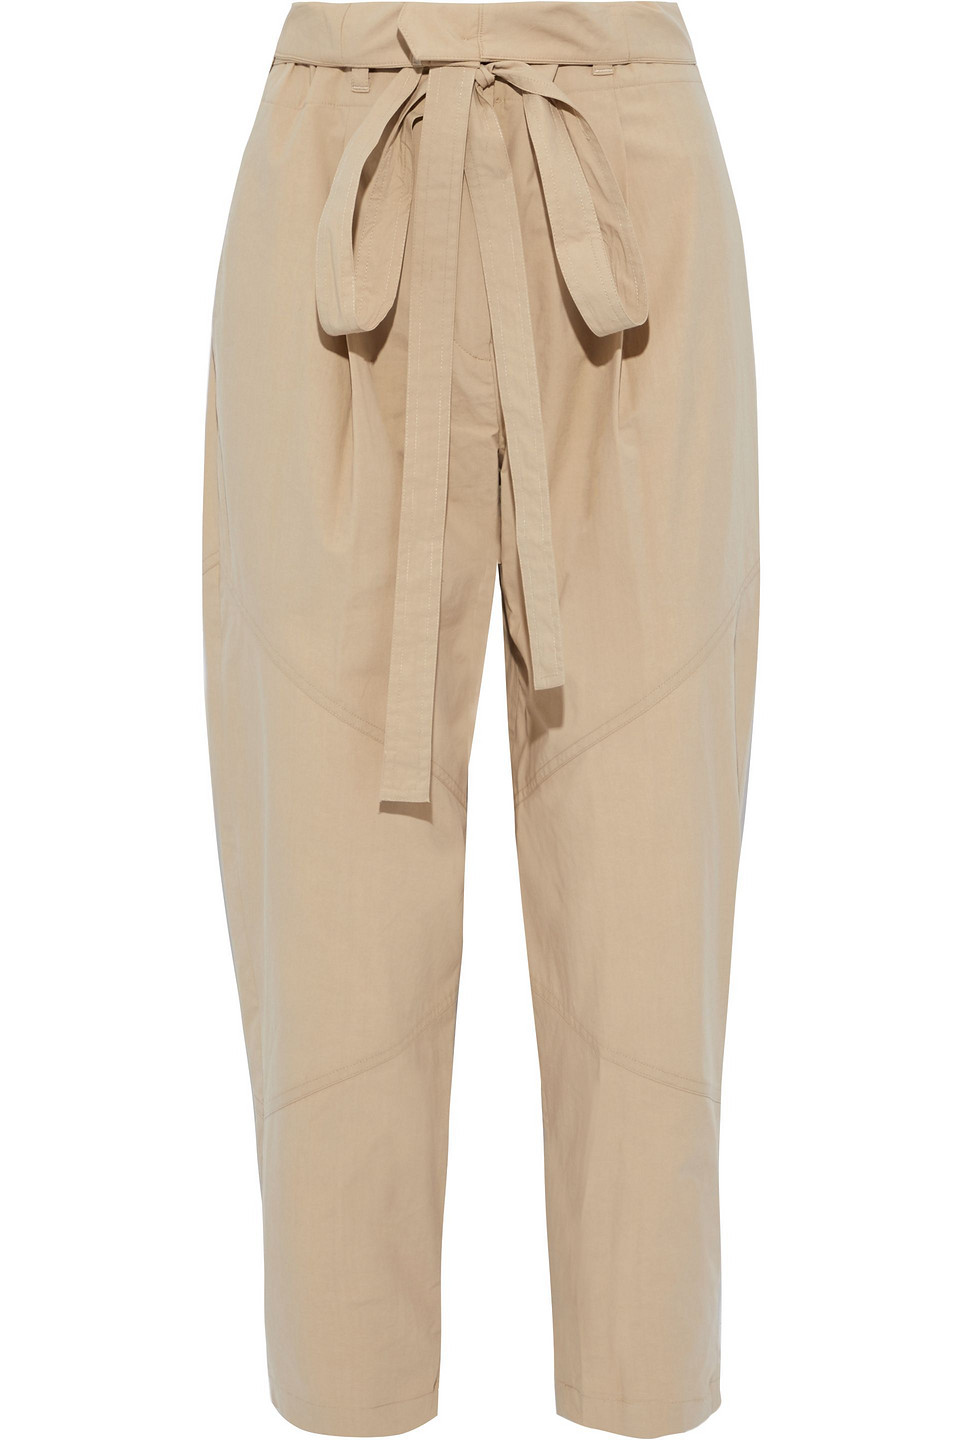 A.L.C. | A.l.c. Woman Bryan Cropped Cotton-blend Tapered Pants Beige | Clouty